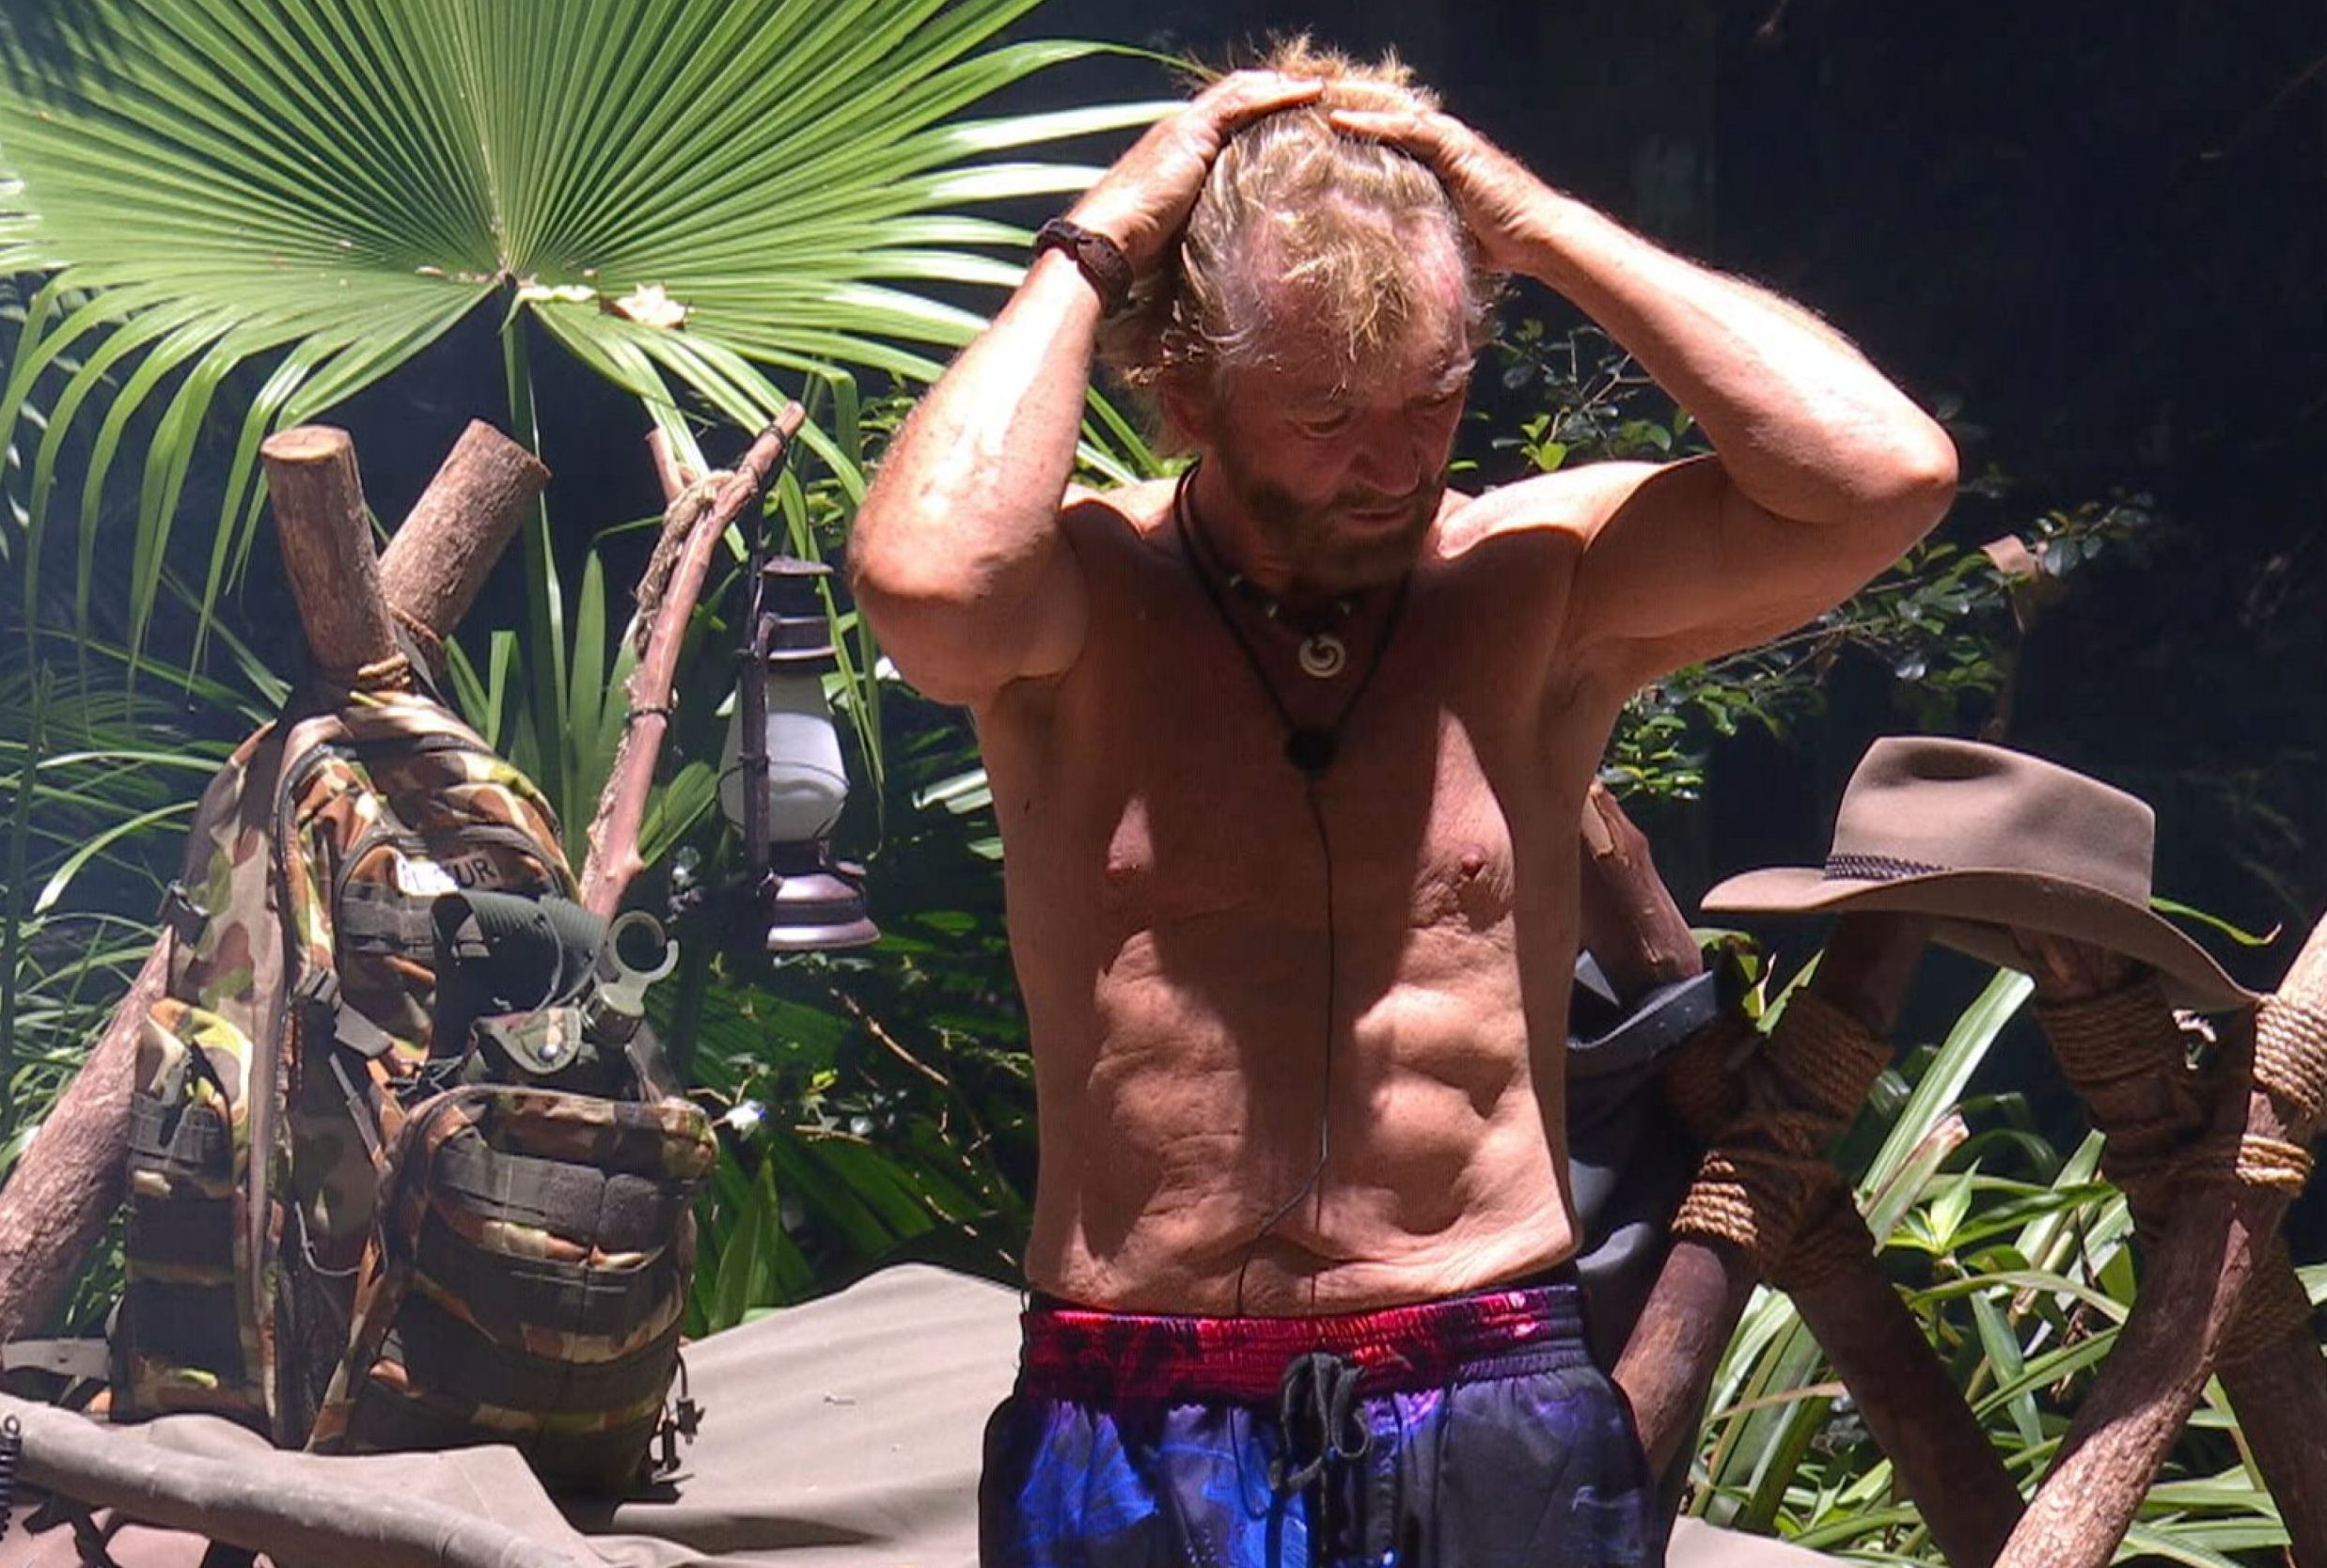 STRICT EMBARGO - NOT TO BE USED BEFORE 22:00 GMT, 26 NOV 2018 - EDITORIAL USE ONLY Mandatory Credit: Photo by ITV/REX (9992881hk) Noel and Nick Tension - Noel Edmonds 'I'm a Celebrity... Get Me Out of Here!' TV Show, Series 18, Australia - 26 Nov 2018